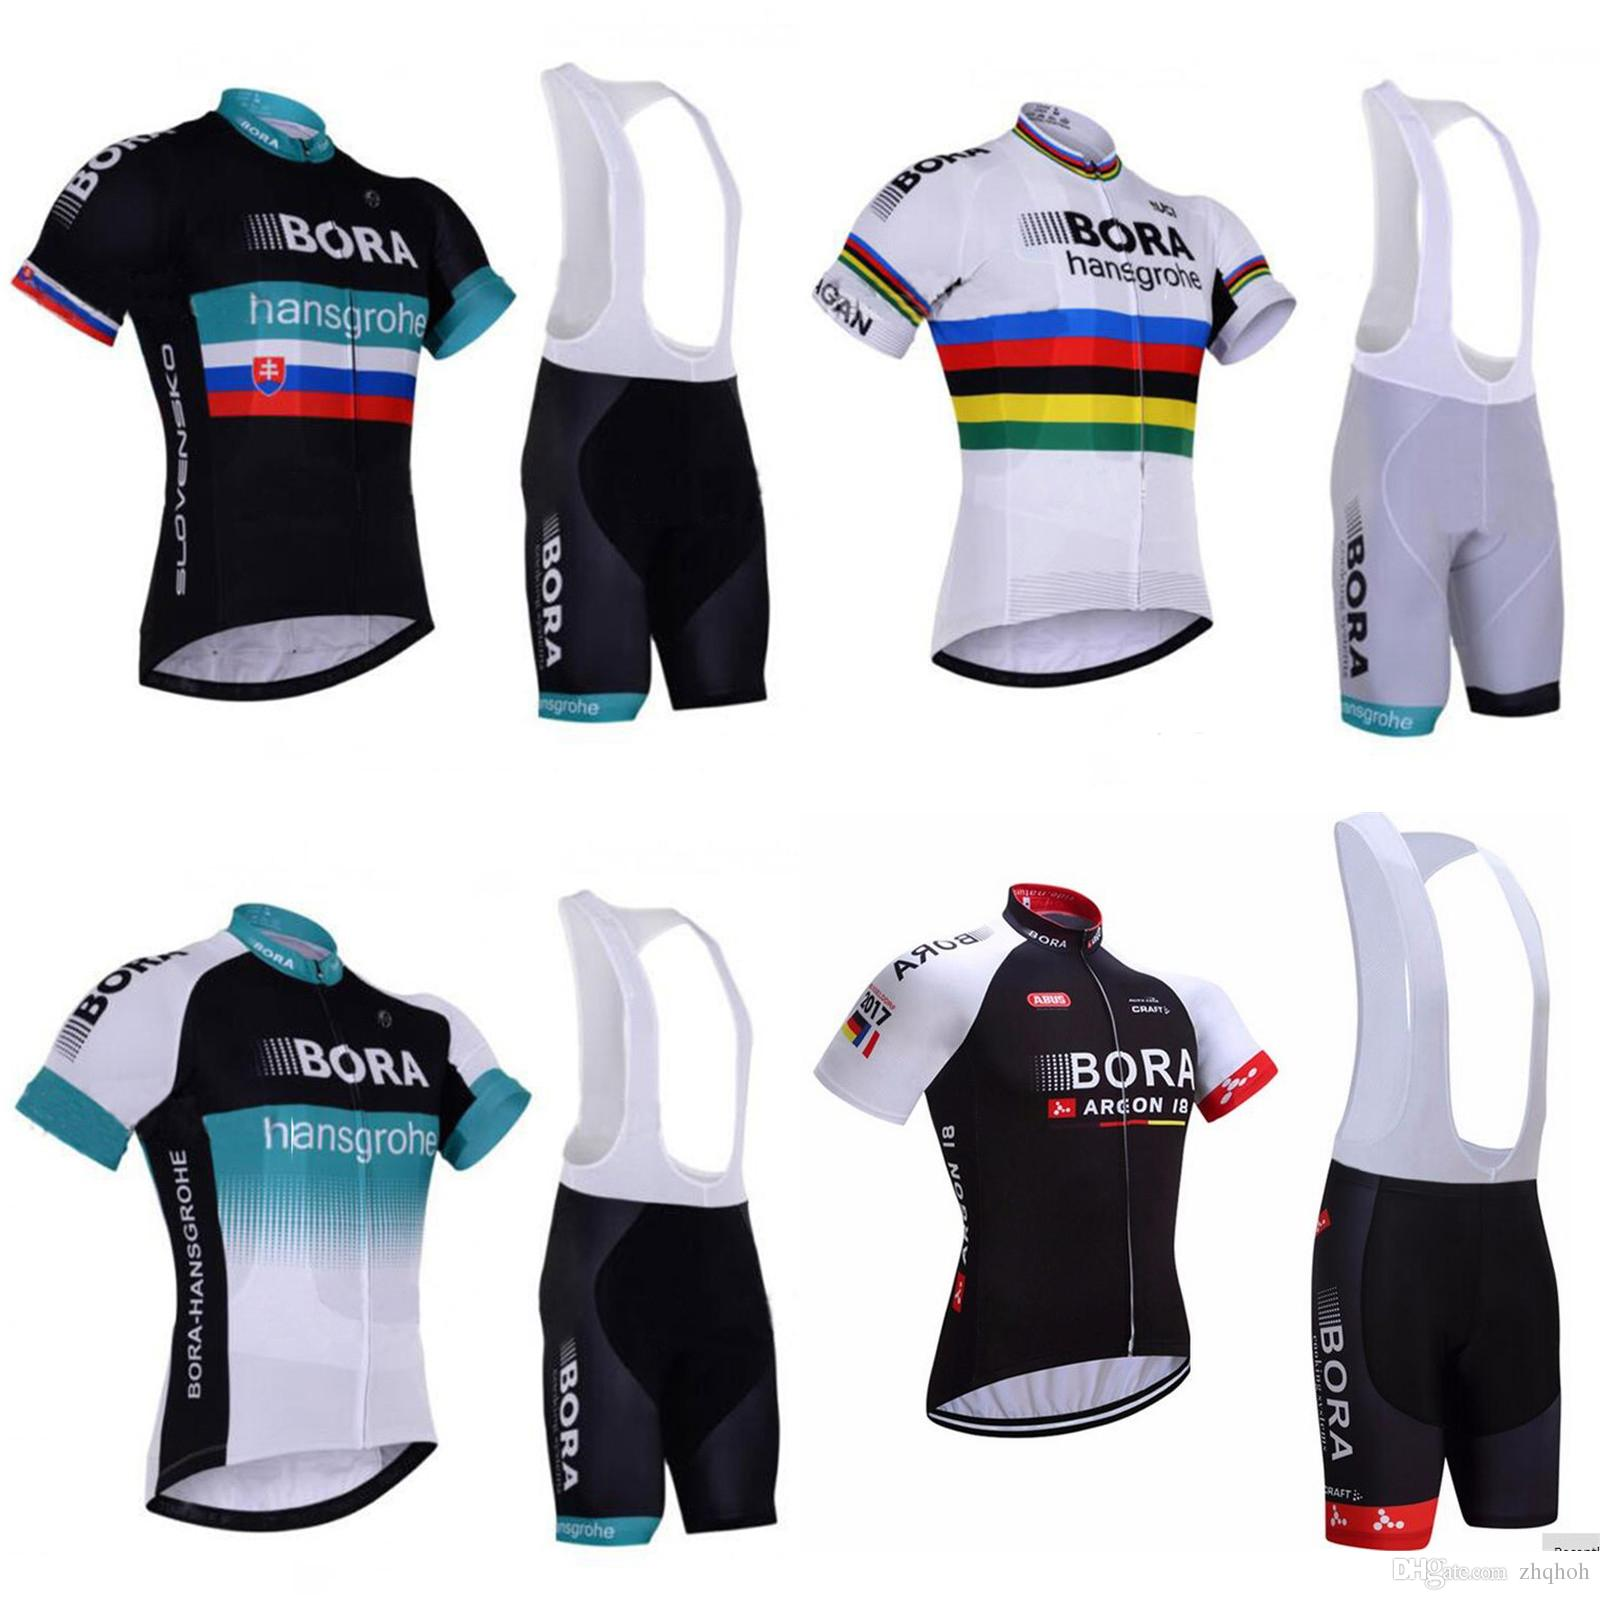 2017 Bora Hansgrohe Summer Cycling Jersey And Bib Shorts Kit Four Color  Cycling Team Jerseys Cycling Jersey Sale From Zhqhoh ca21fd4e5